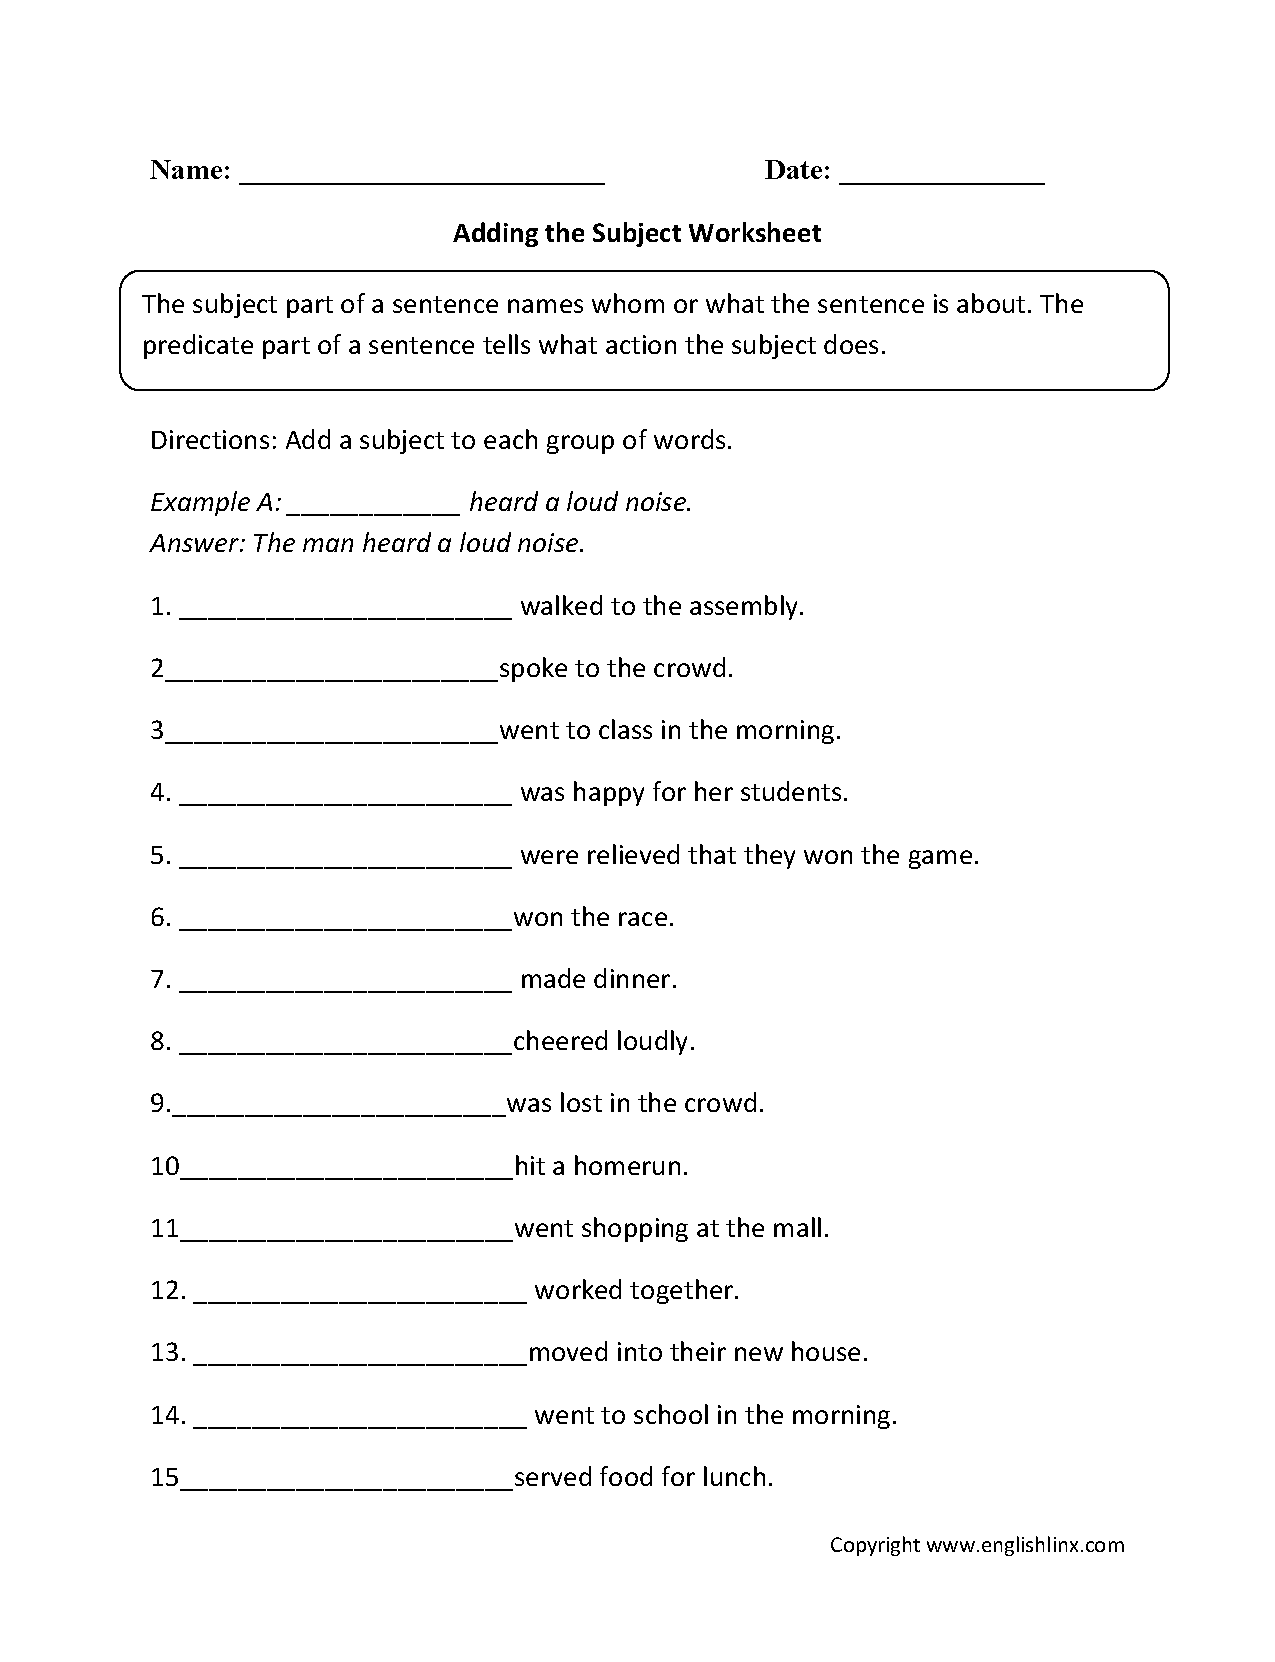 worksheet 9th Grade English Worksheets englishlinx com subject and predicate worksheets adding a worksheet